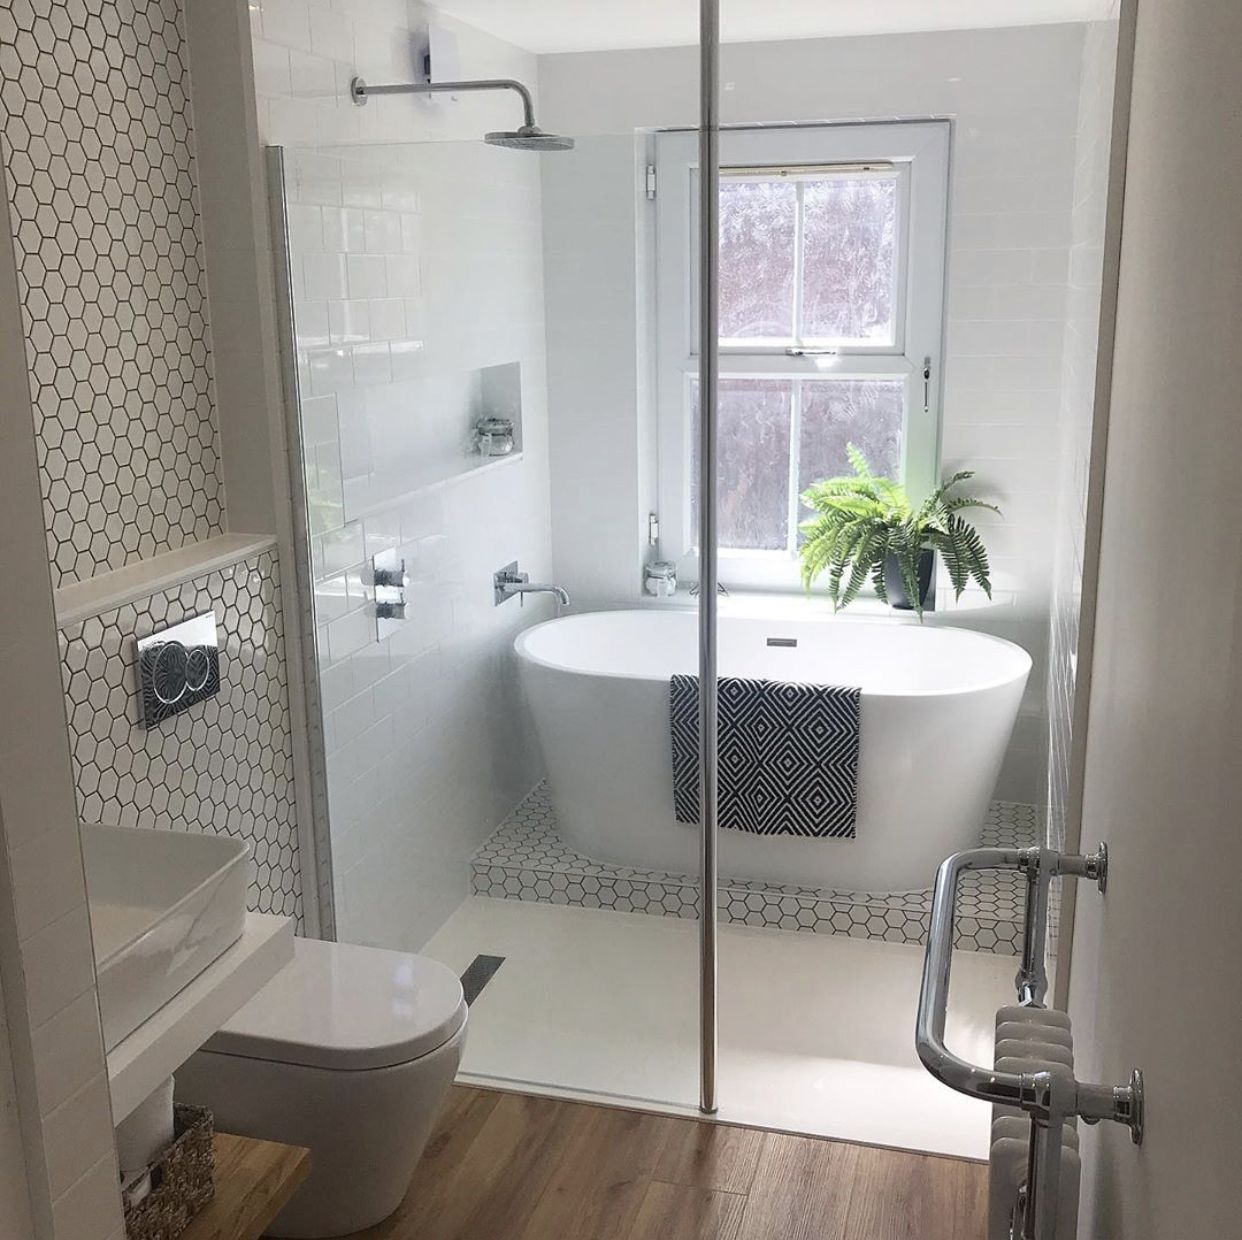 a fantastic family bathroom with a super clever layout